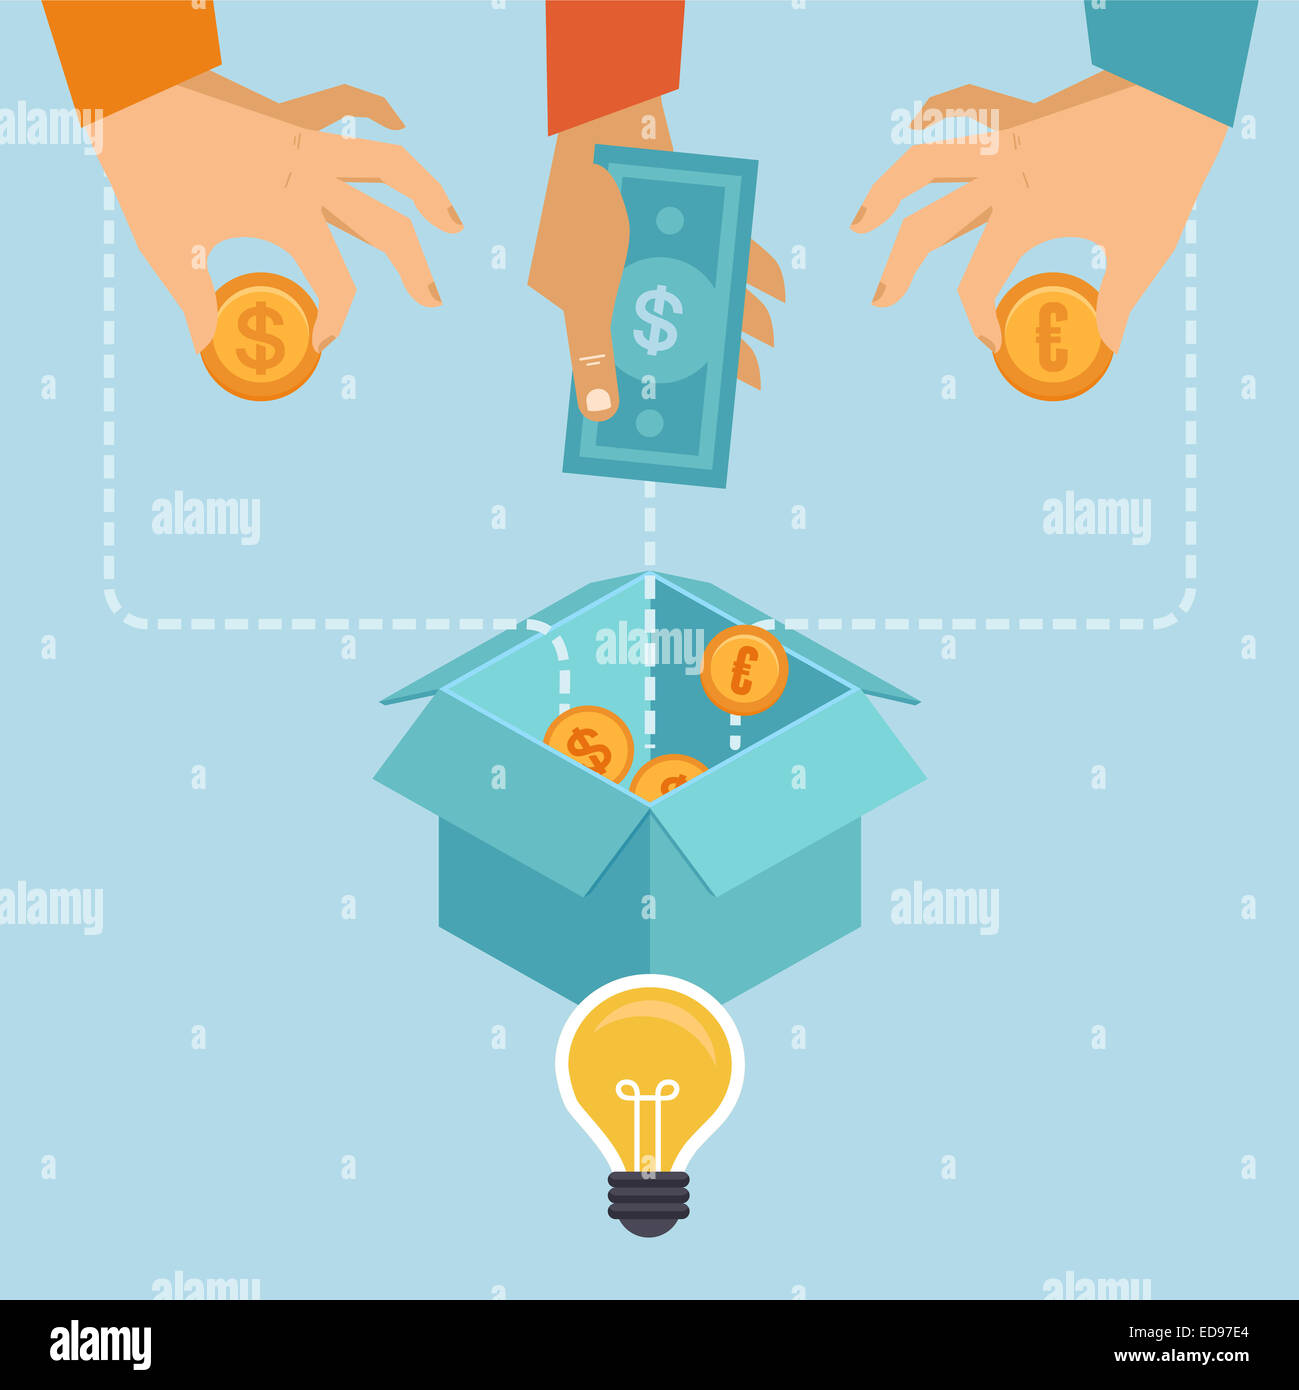 Crowdfunding concept in flat style - new business model - funding project by raising monetary contributions from - Stock Image